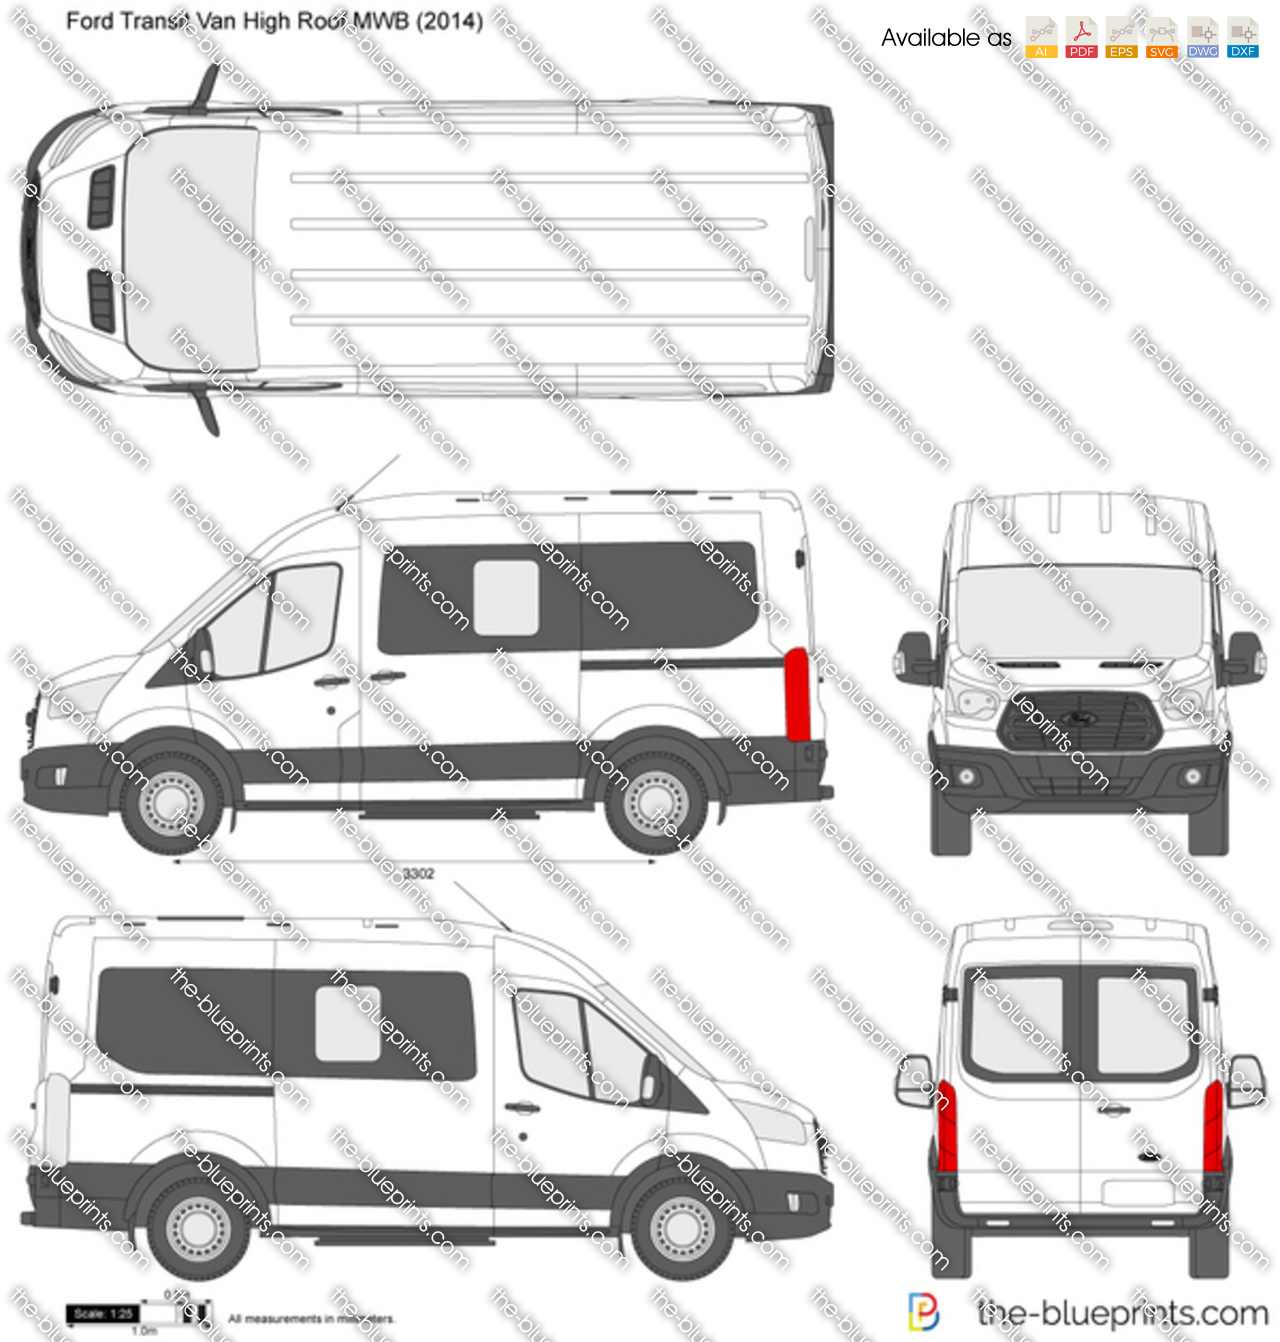 Ford transit mwb dimensions crafts the blueprints vector drawing ford transit van